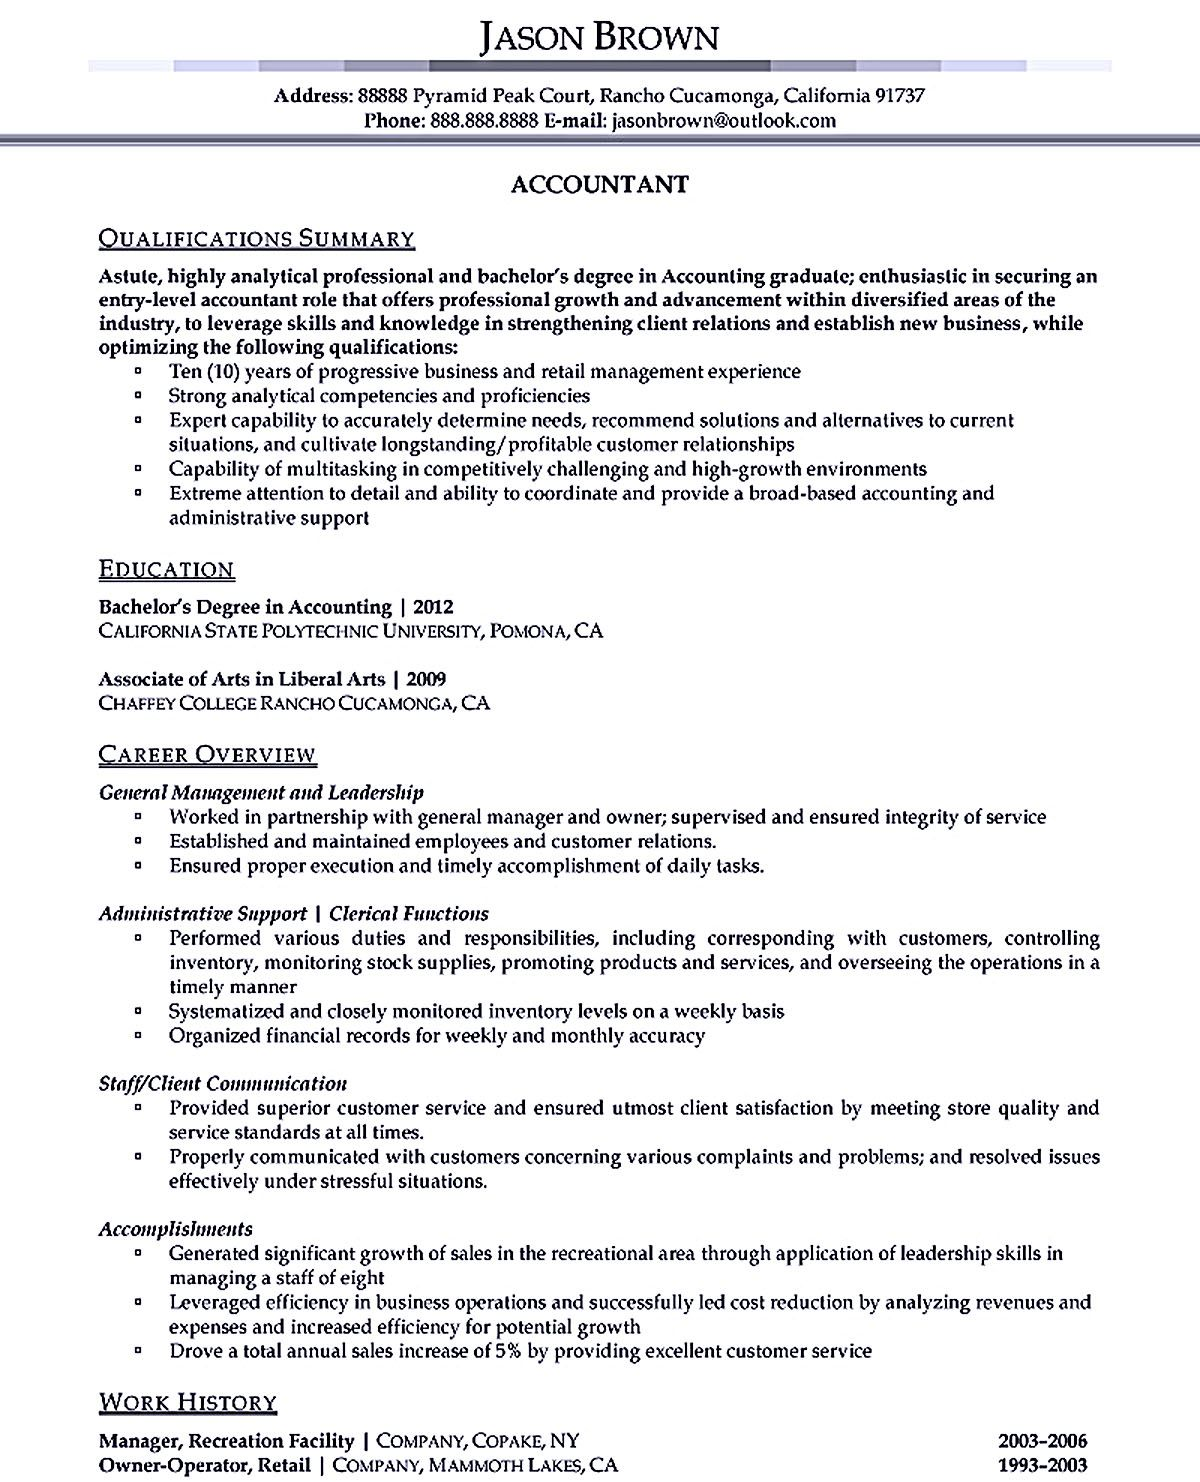 Outstanding Accountant Resume Sample For Junior And Senior Accountant Resume Problem Solution Essay Resume